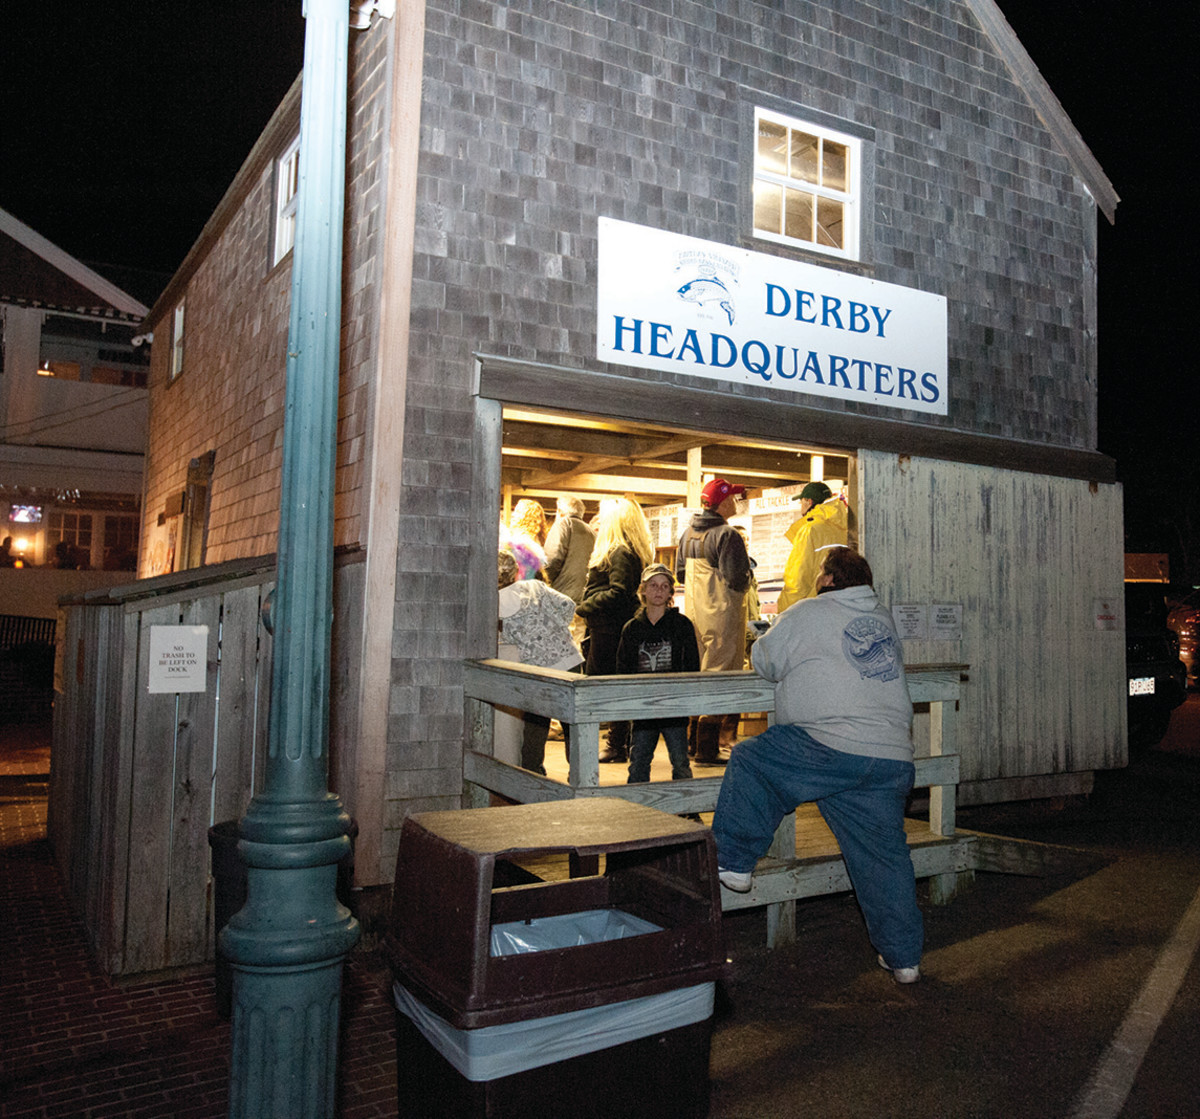 Martha's Vineyard Striped Bass and Bluefish Derby, final hour at the weigh-in station at the foot of Main stsreet in Edgartown.